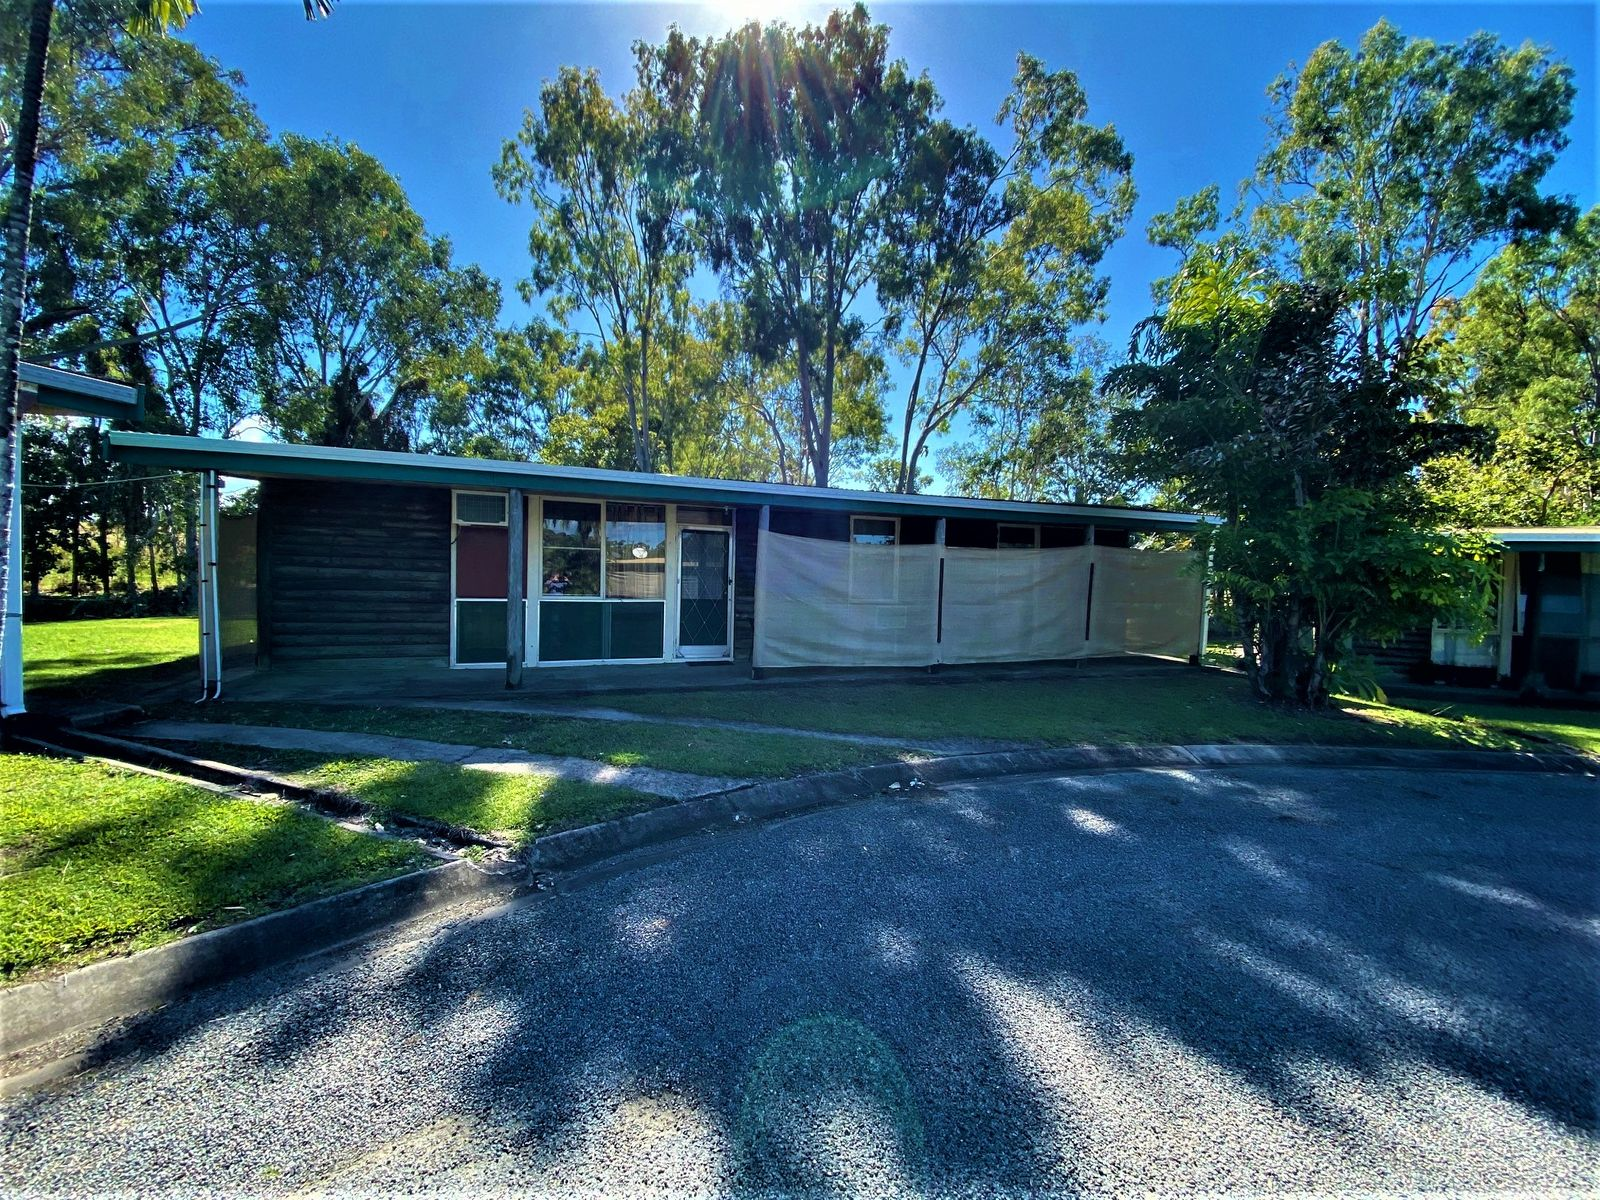 103 Miran Khan Drive, Freshwater Point, QLD 4737